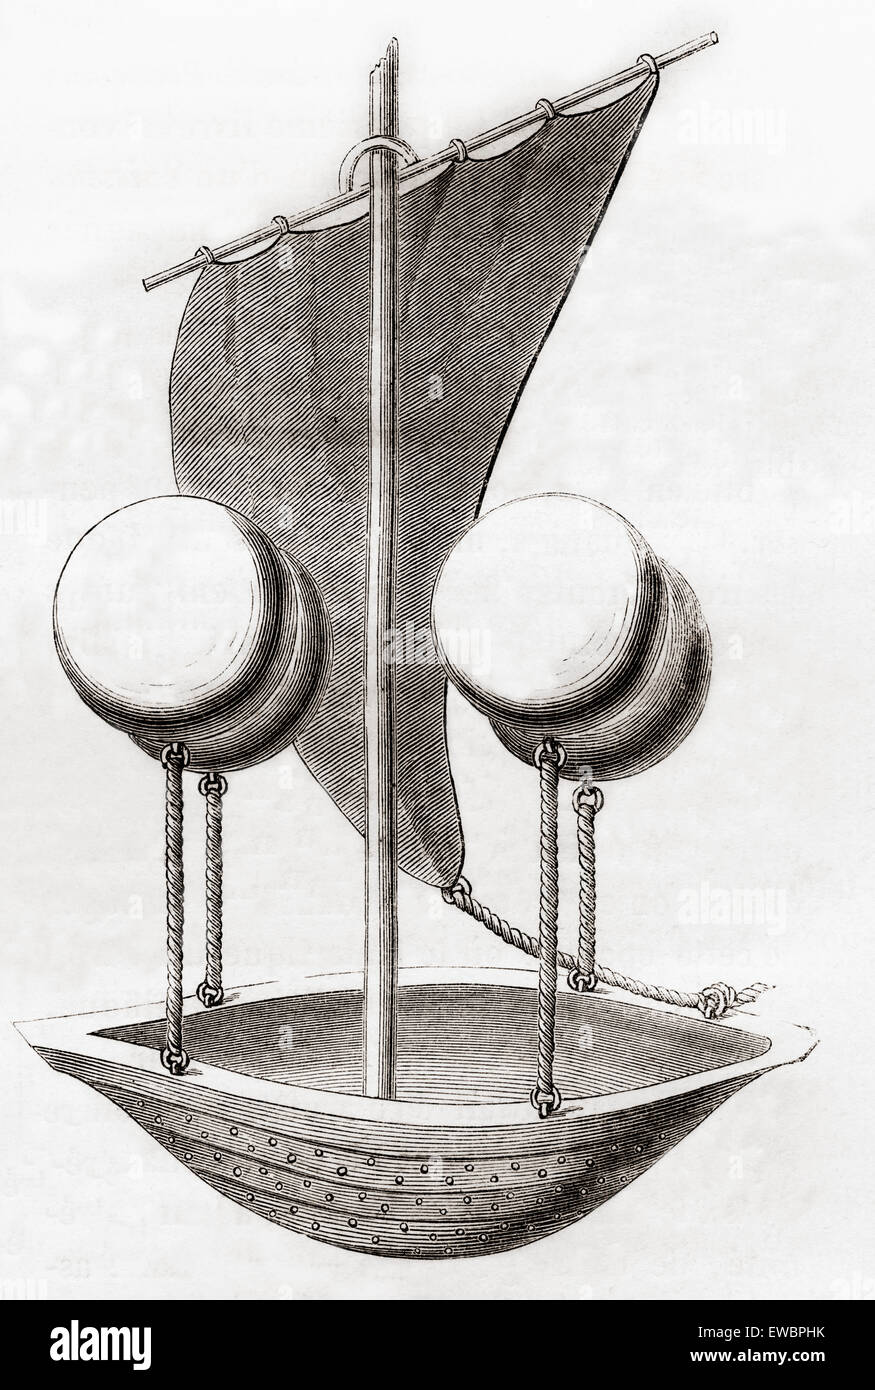 Francesco de Lana Terzi's Flying Boat concept c.1670. Francesco de Lana Terzi, 1631 - 1687. Jésuite italien, Photo Stock